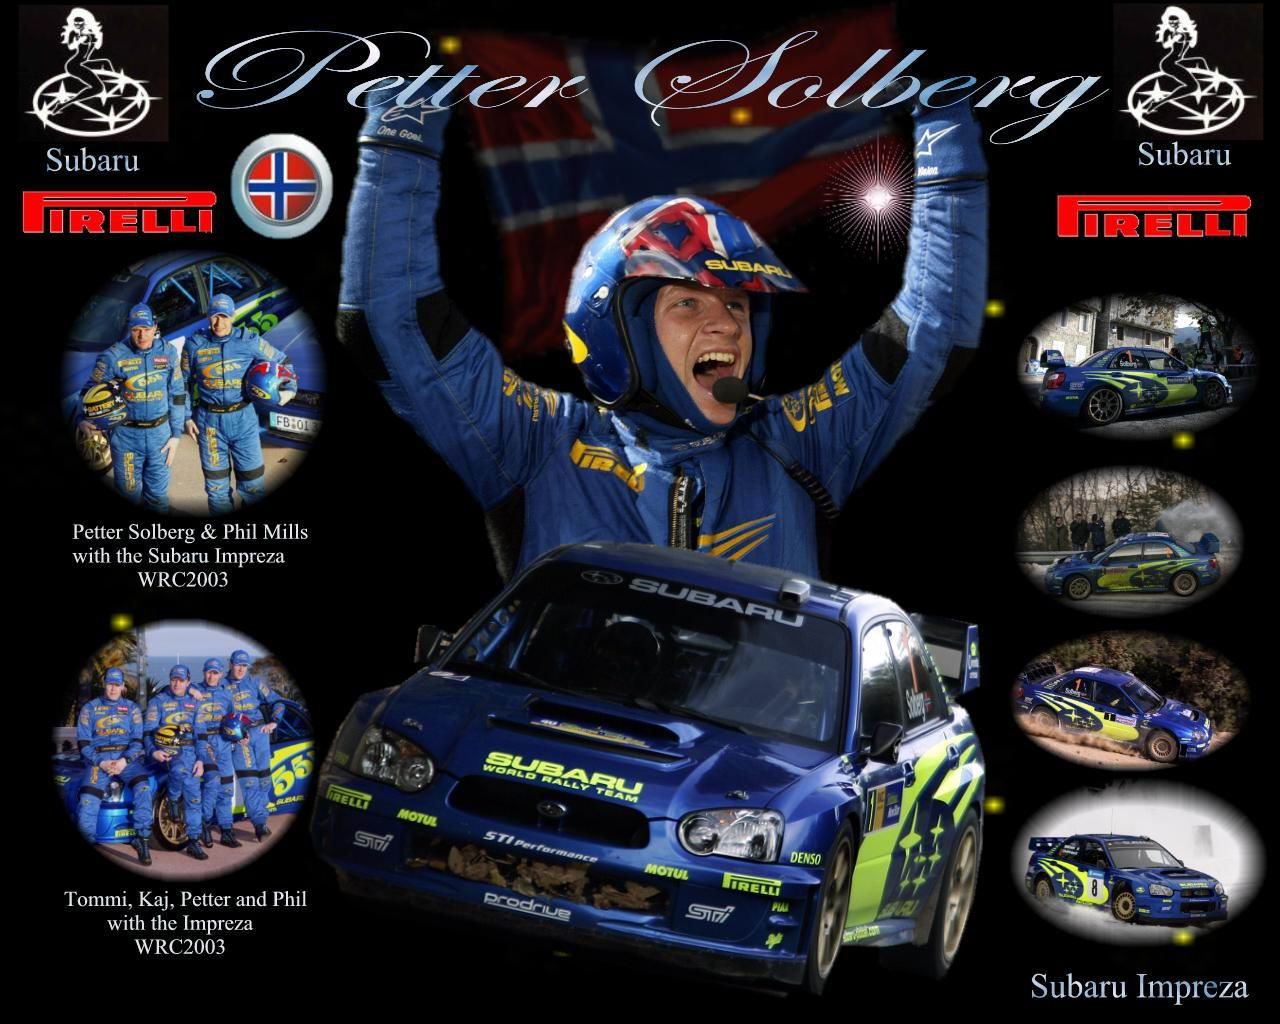 World Champion Petter Solberg 壁紙 30900747 ファンポップ